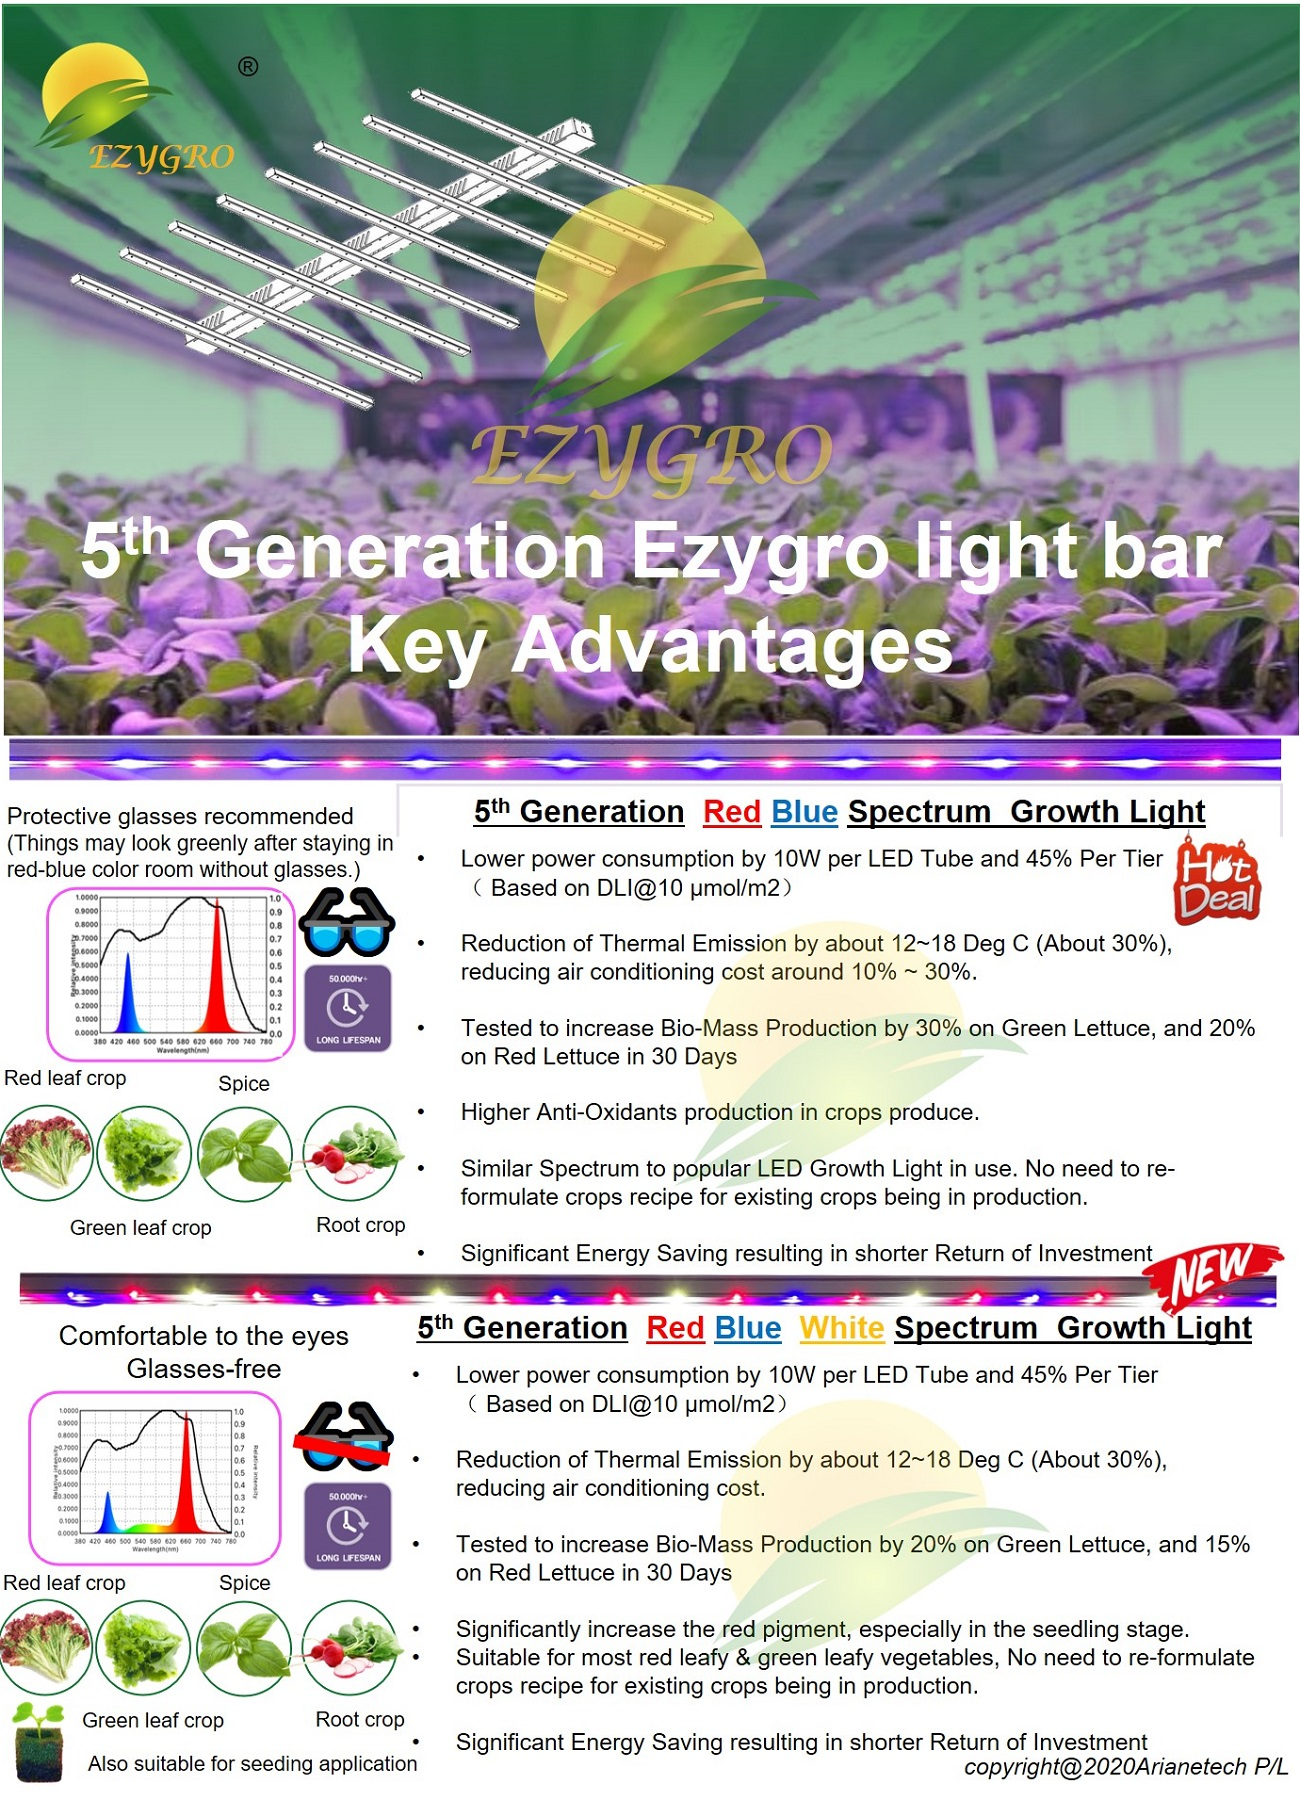 5 generation ezygro led grow light bar for crops in vertical farming 4